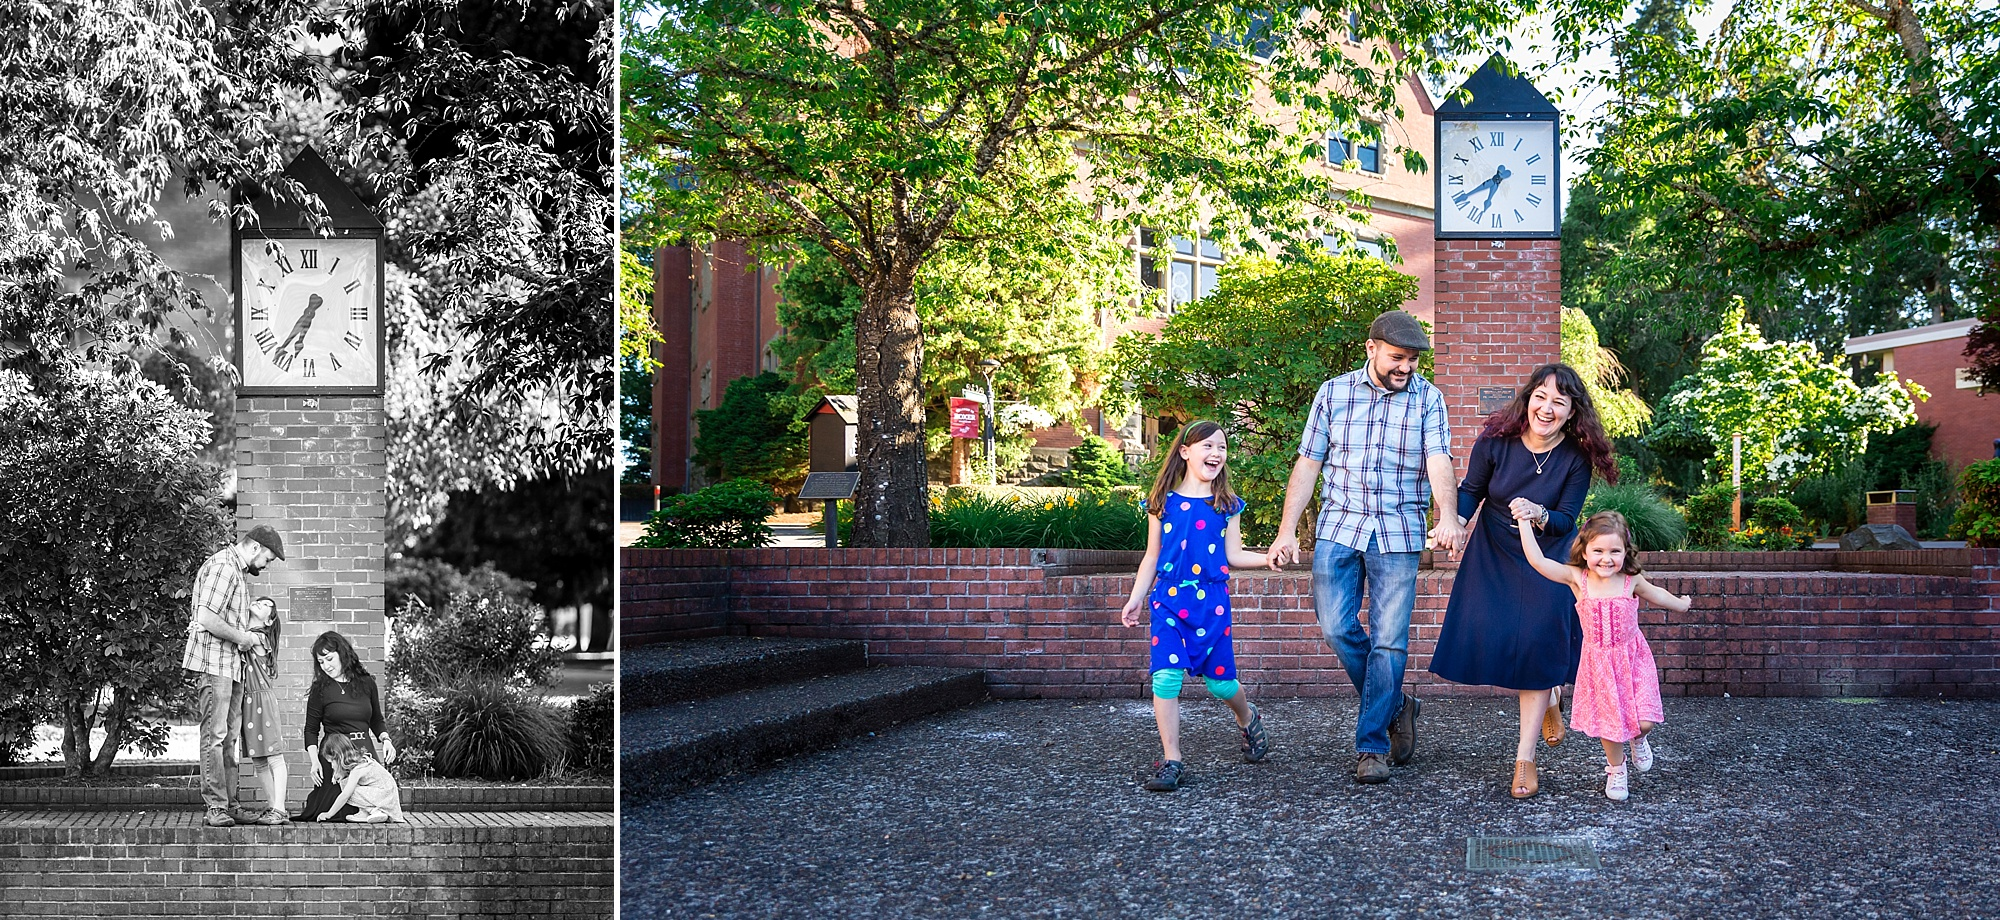 Pacific_University_Forest_Grove_Oregon_Family_Photos_Hunnicutt_Photography_0016